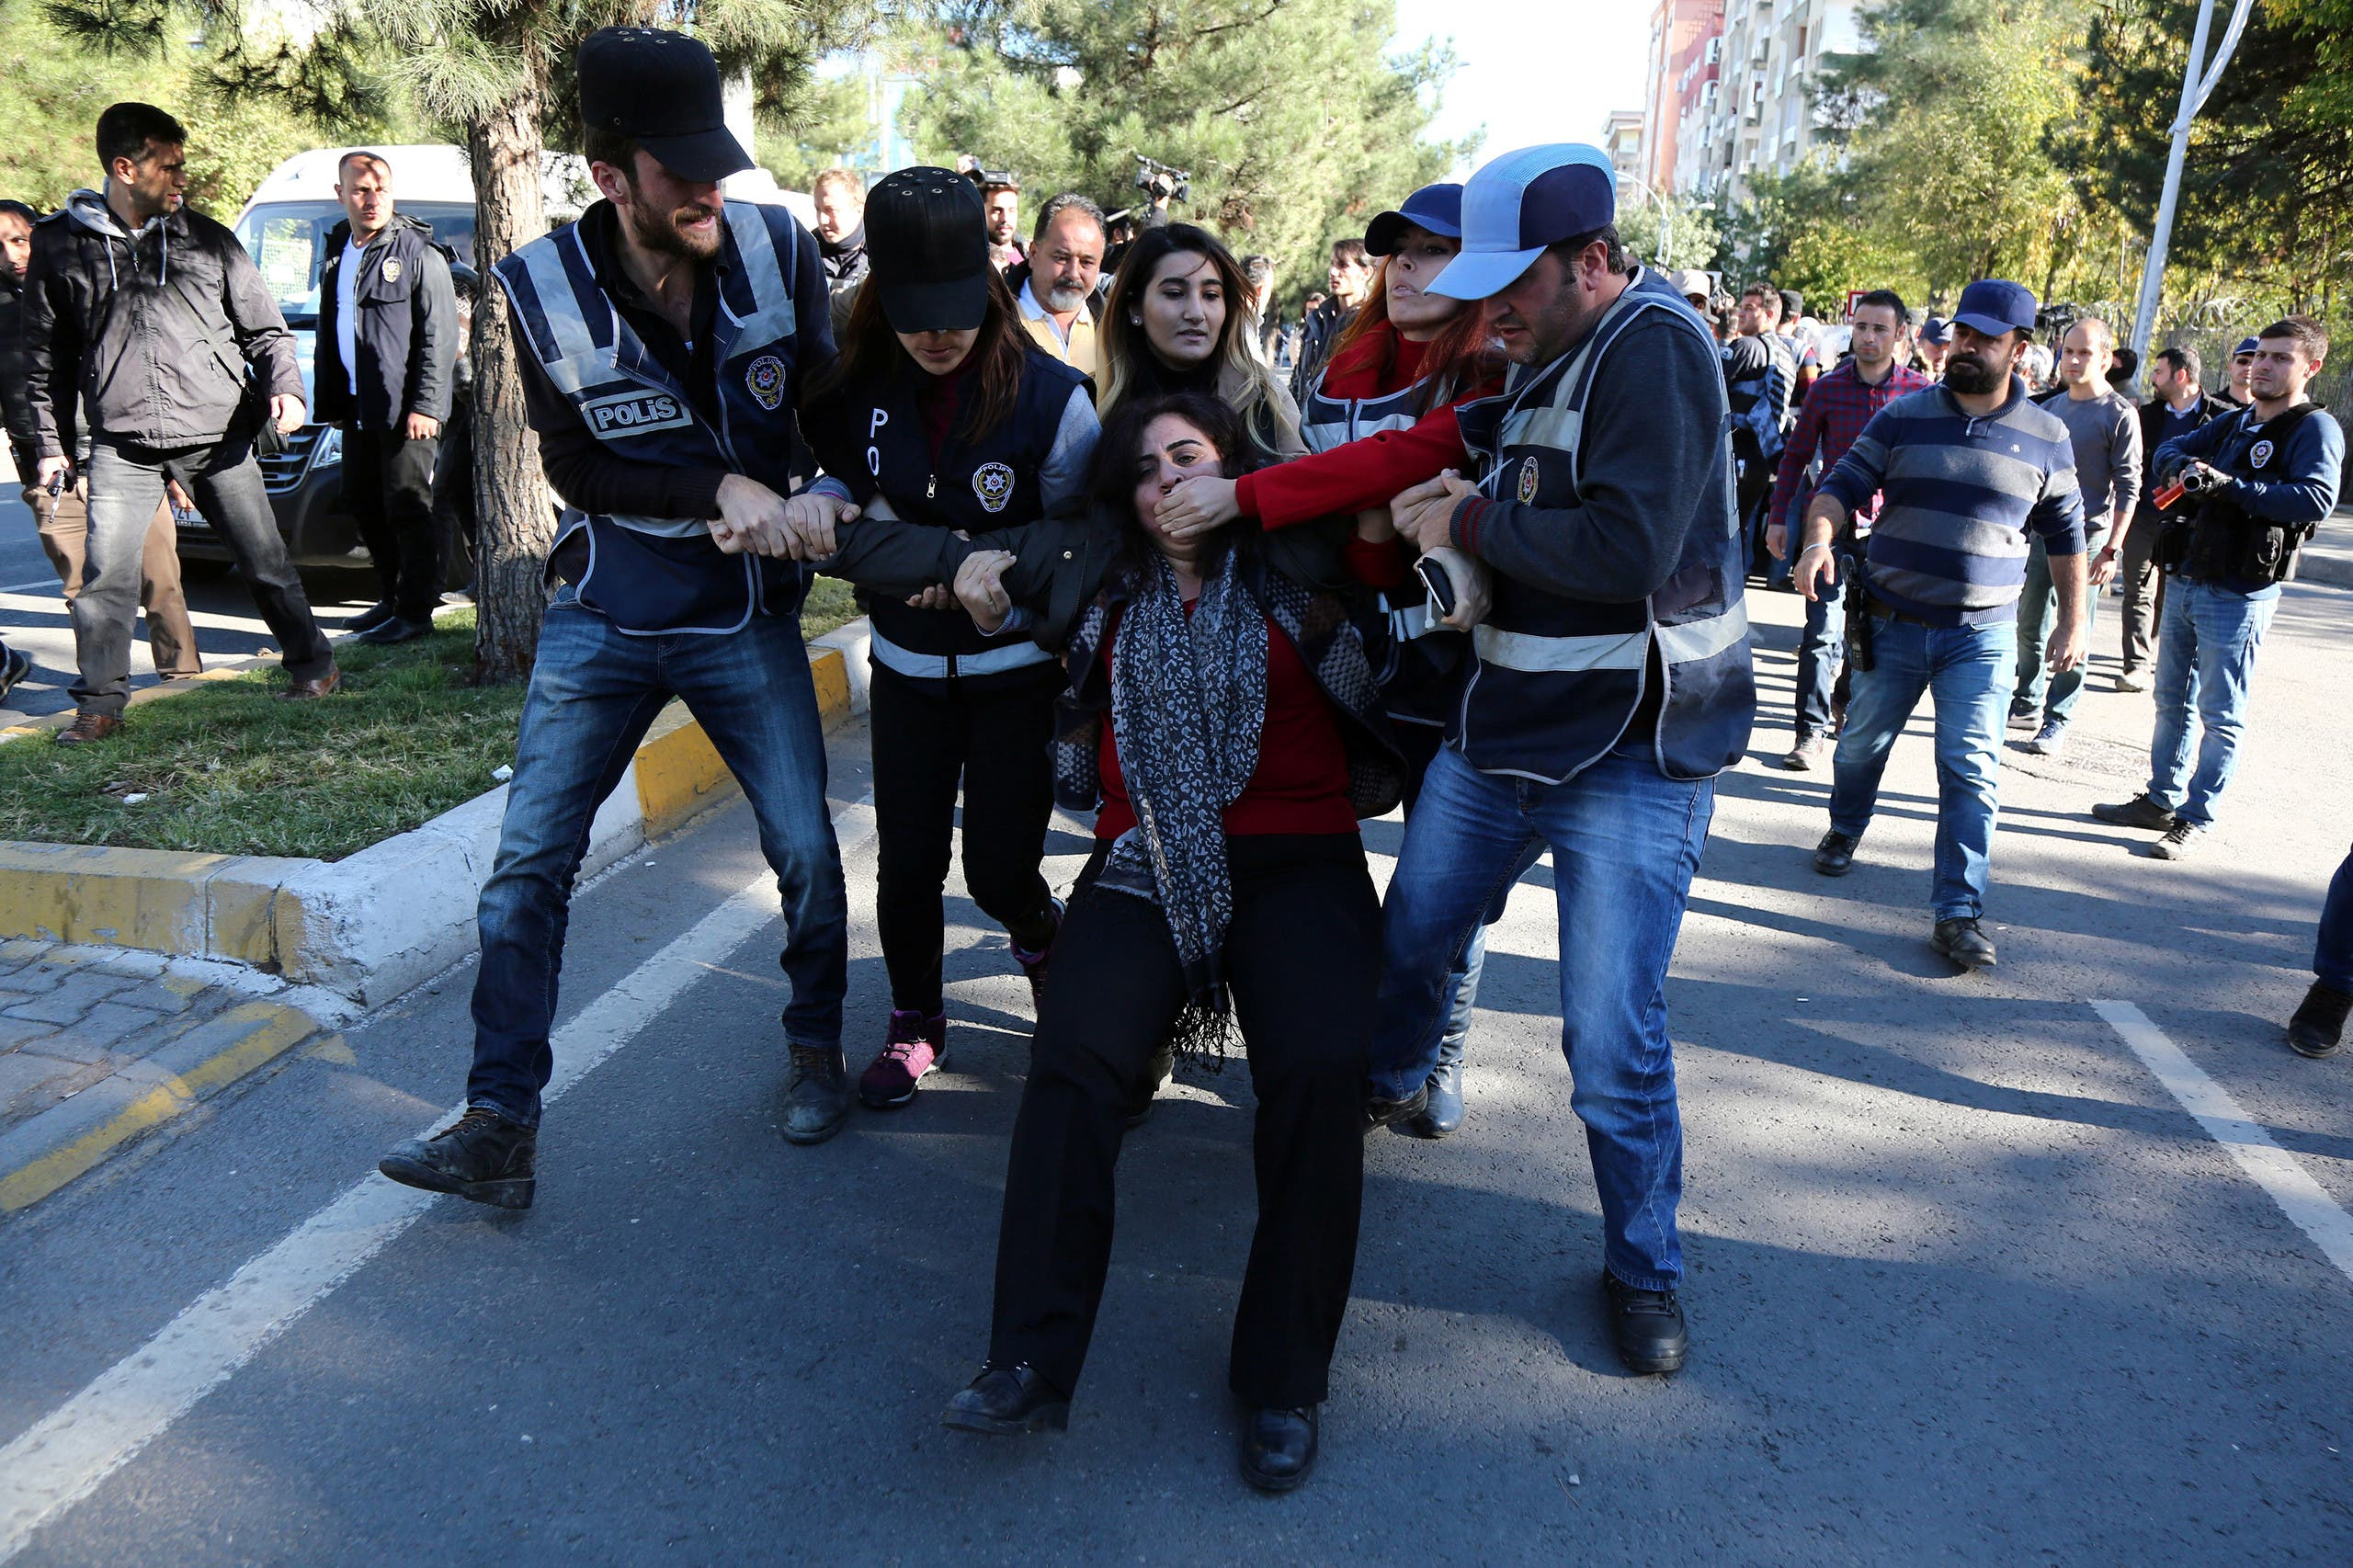 Police detain Sebahat Tuncel, co-chair of the pro-Kurdish Democratic Regions Party (DBP), during a protest against the arrest of Kurdish lawmakers, in the southeastern city of Diyarbakir, Turkey, November 4, 2016. (File photo: Reuters)